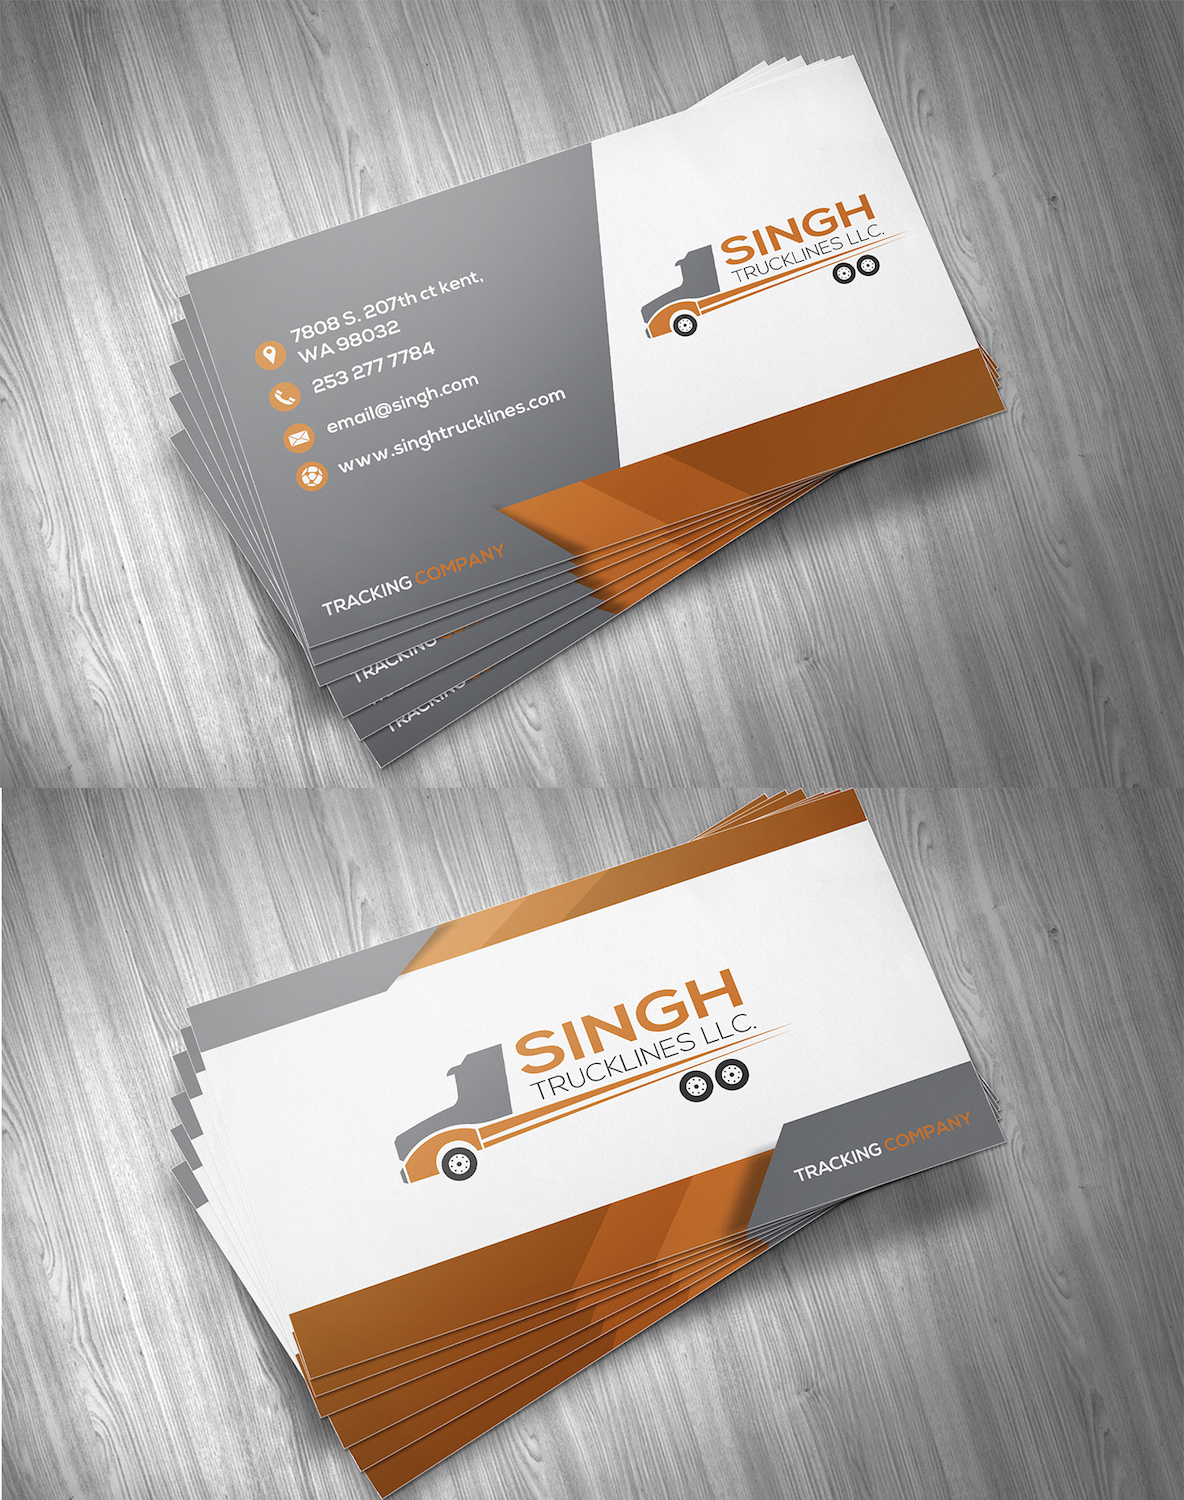 Masculine upmarket trucking company business card design for a business card design by bhairav for this project design 14797530 colourmoves